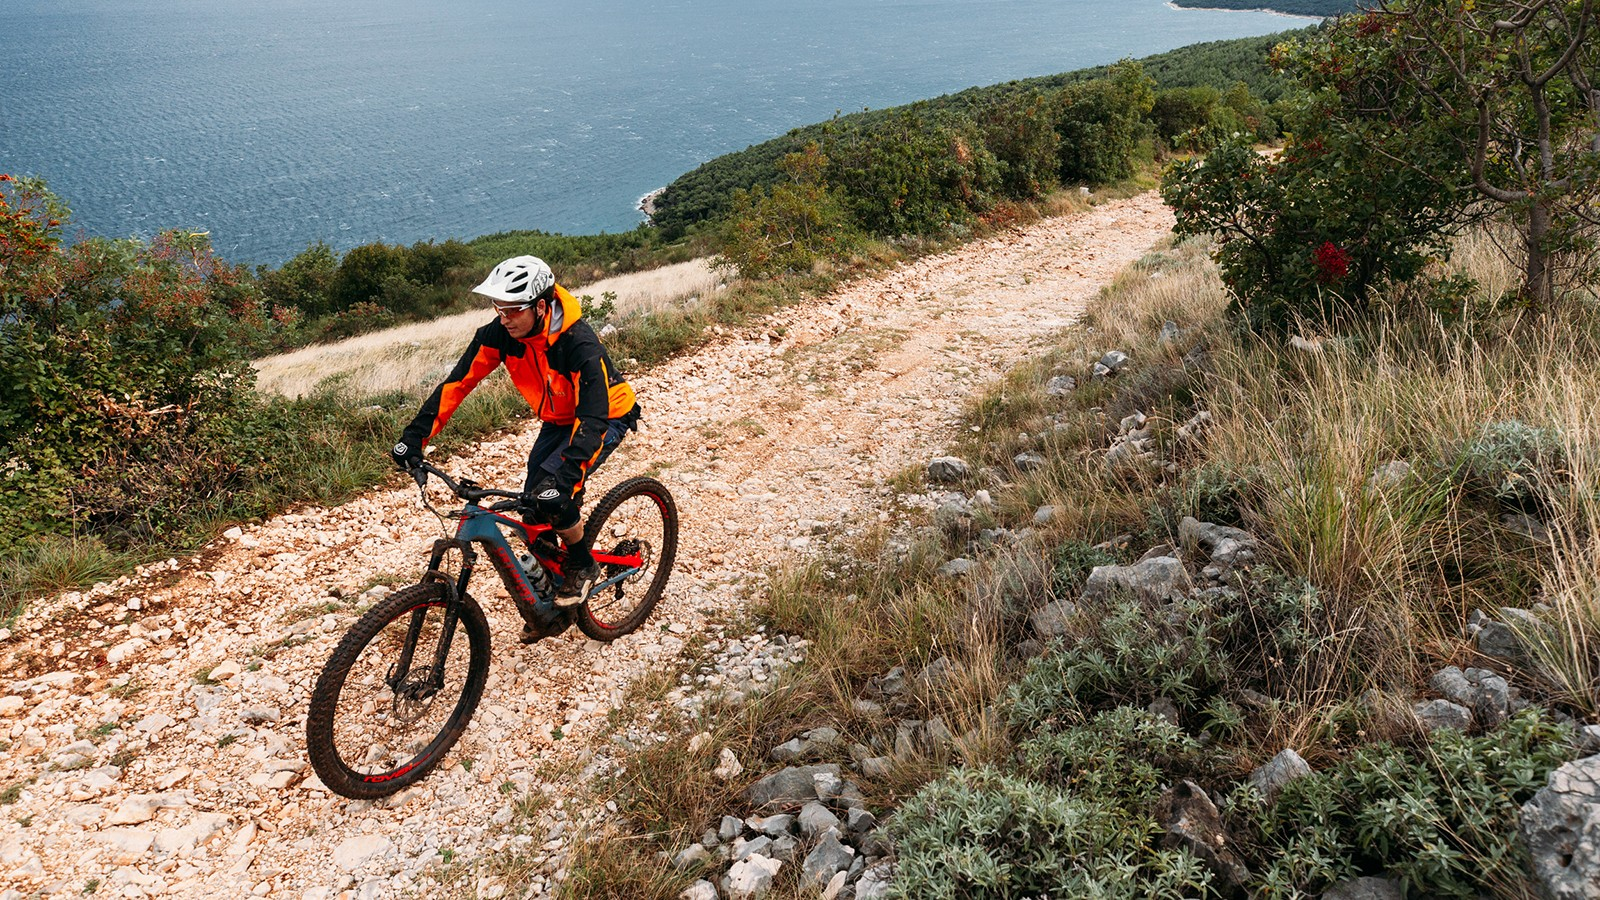 The new 2.1 motor provides plenty of power even in Eco mode to get you up rough, loose gravel climbs